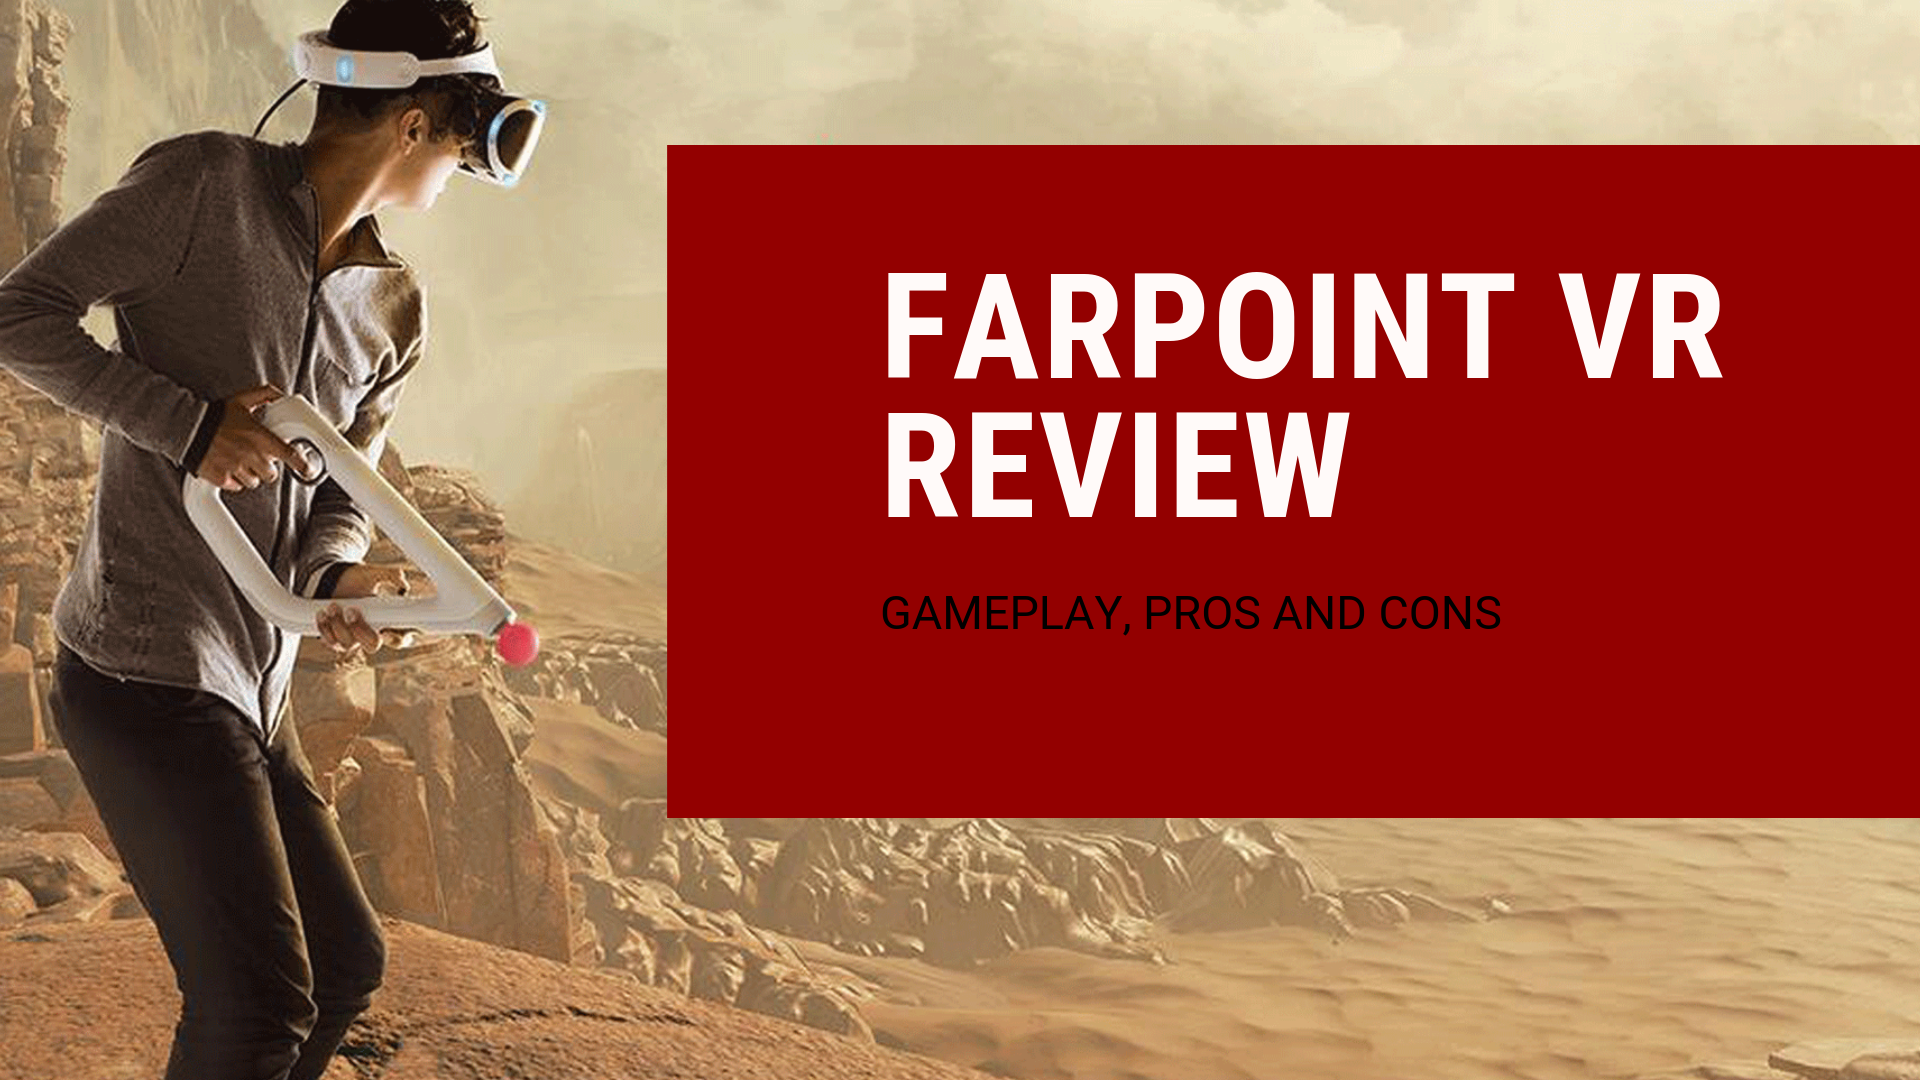 FARPOINT VR REVIEW